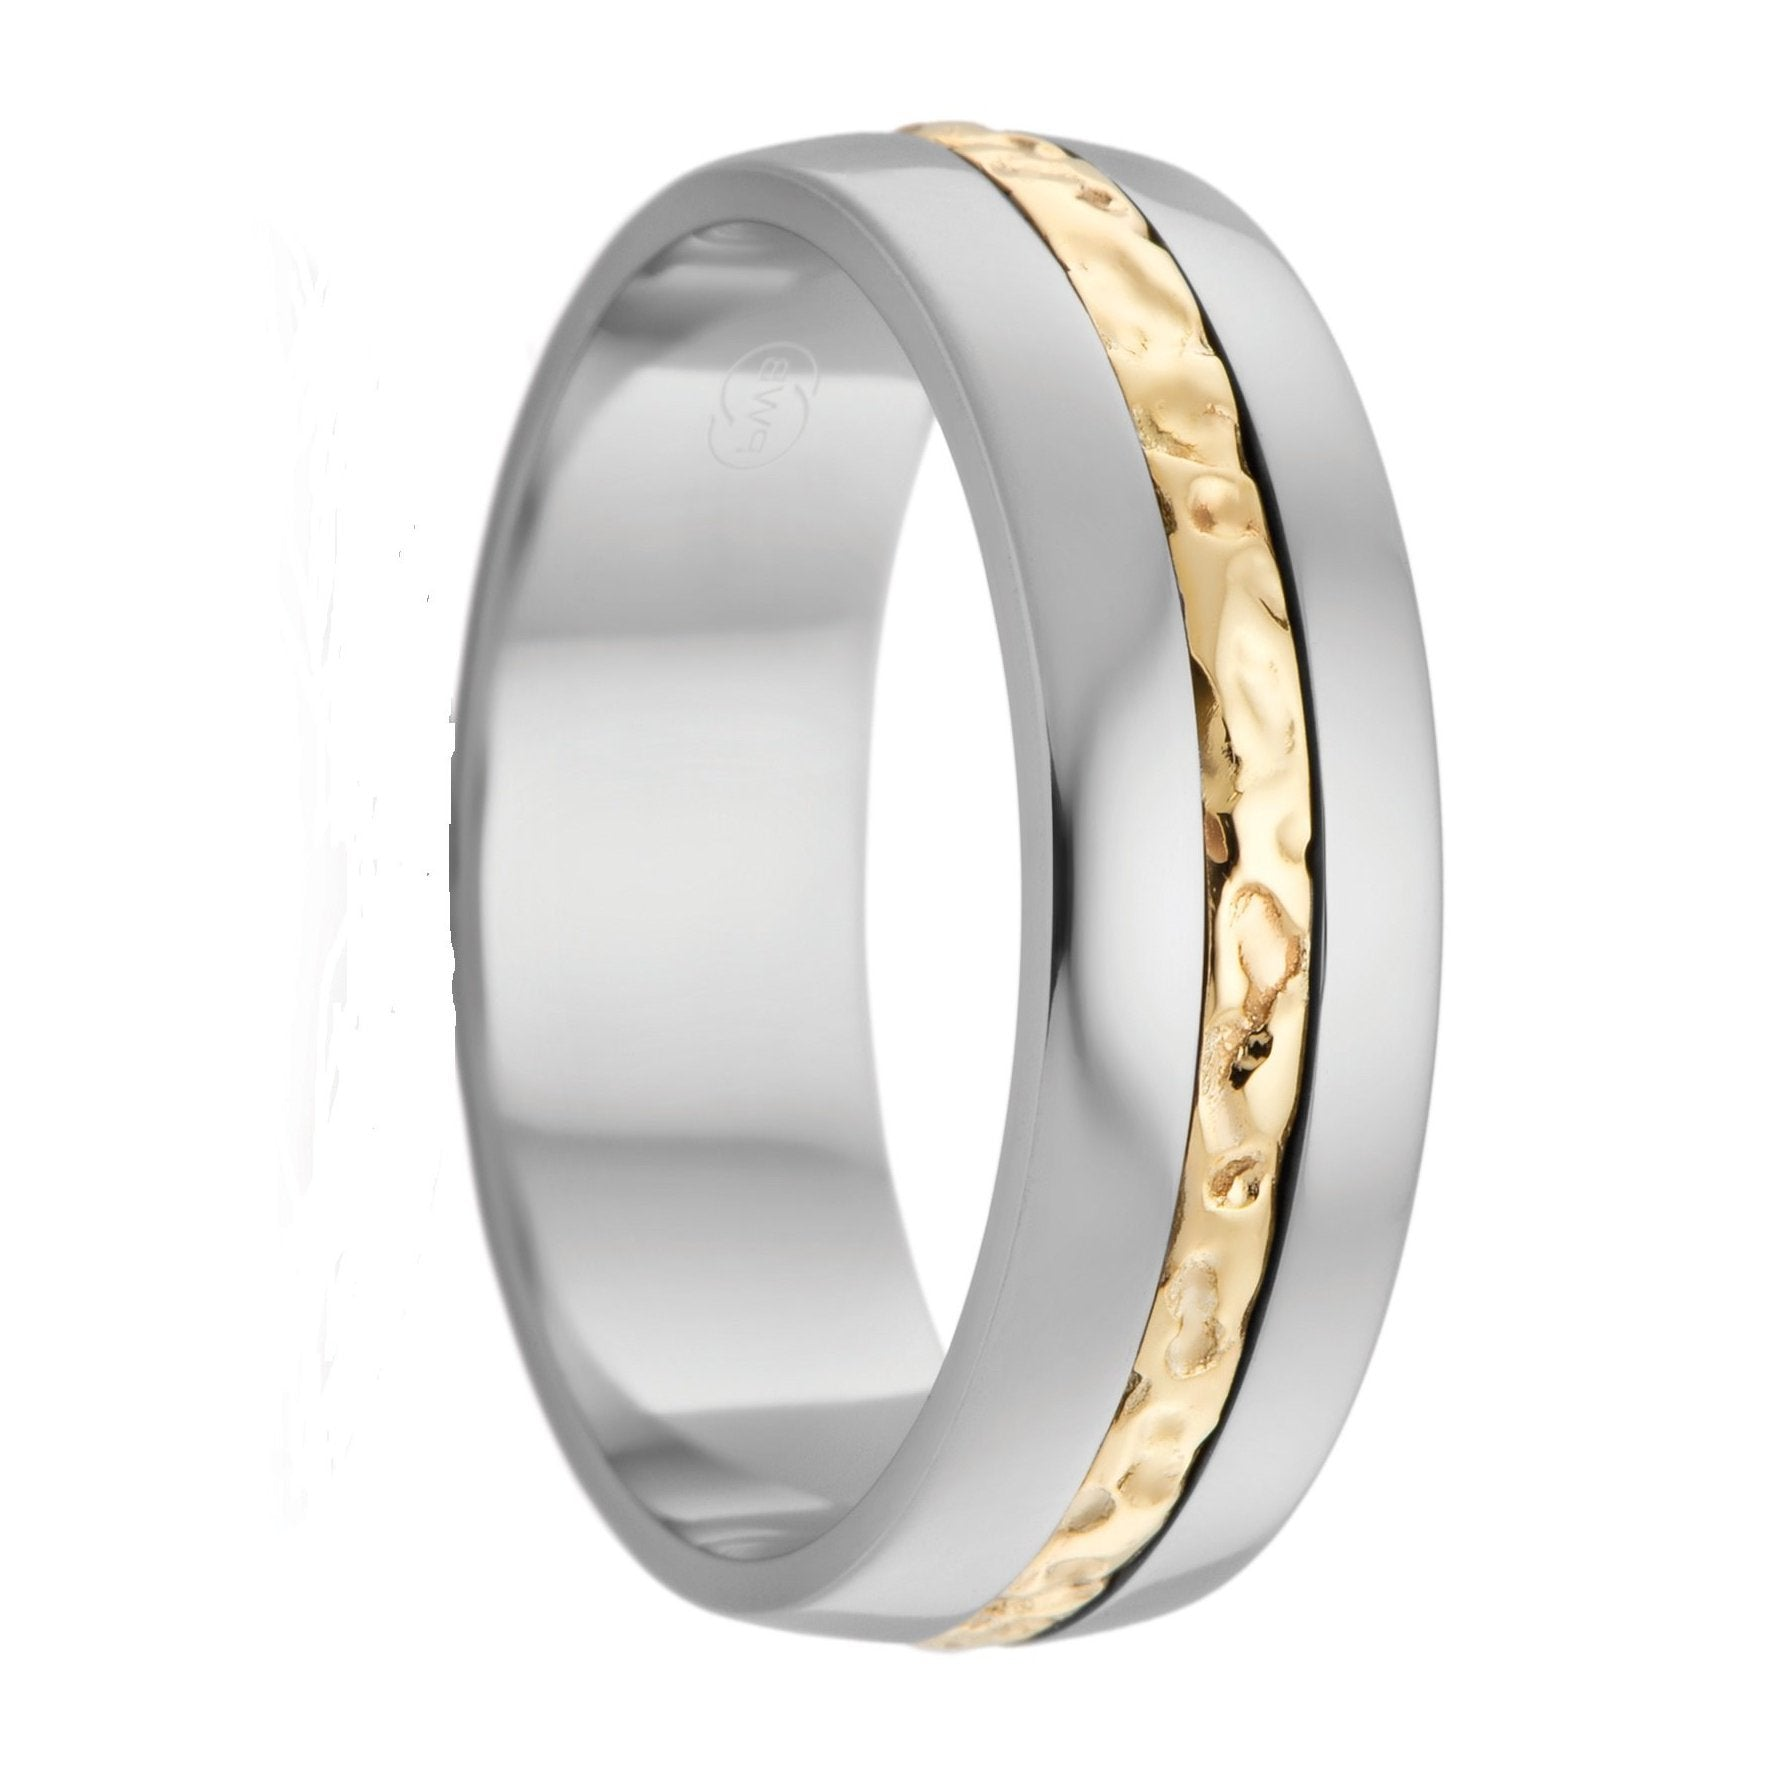 Mens Wedding Rings.Men S Rings Men S Wedding Rings Mens Gold Rings Jewellers